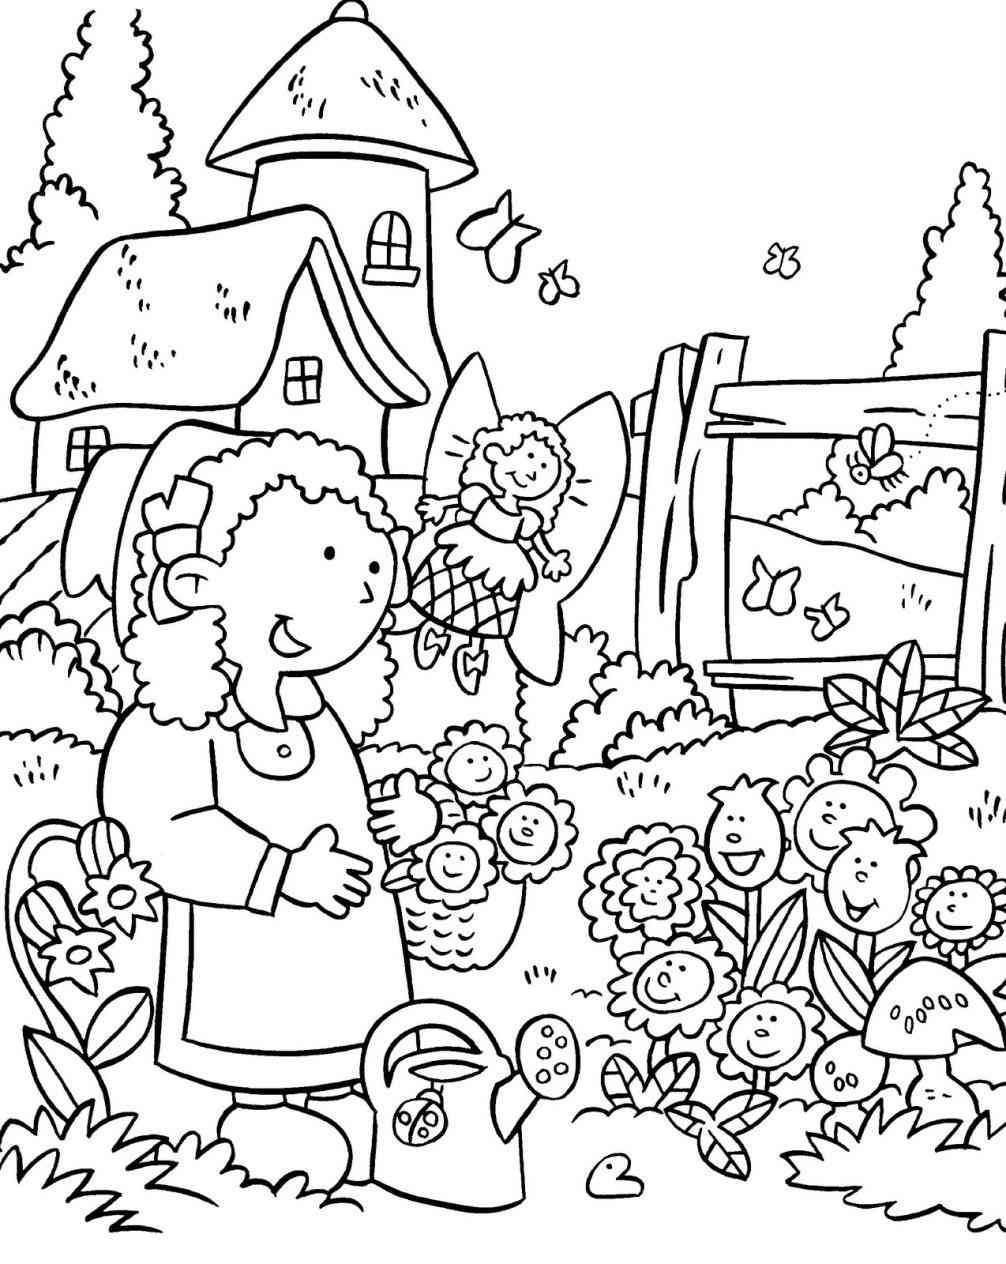 free minion coloring pages - coloring pages app